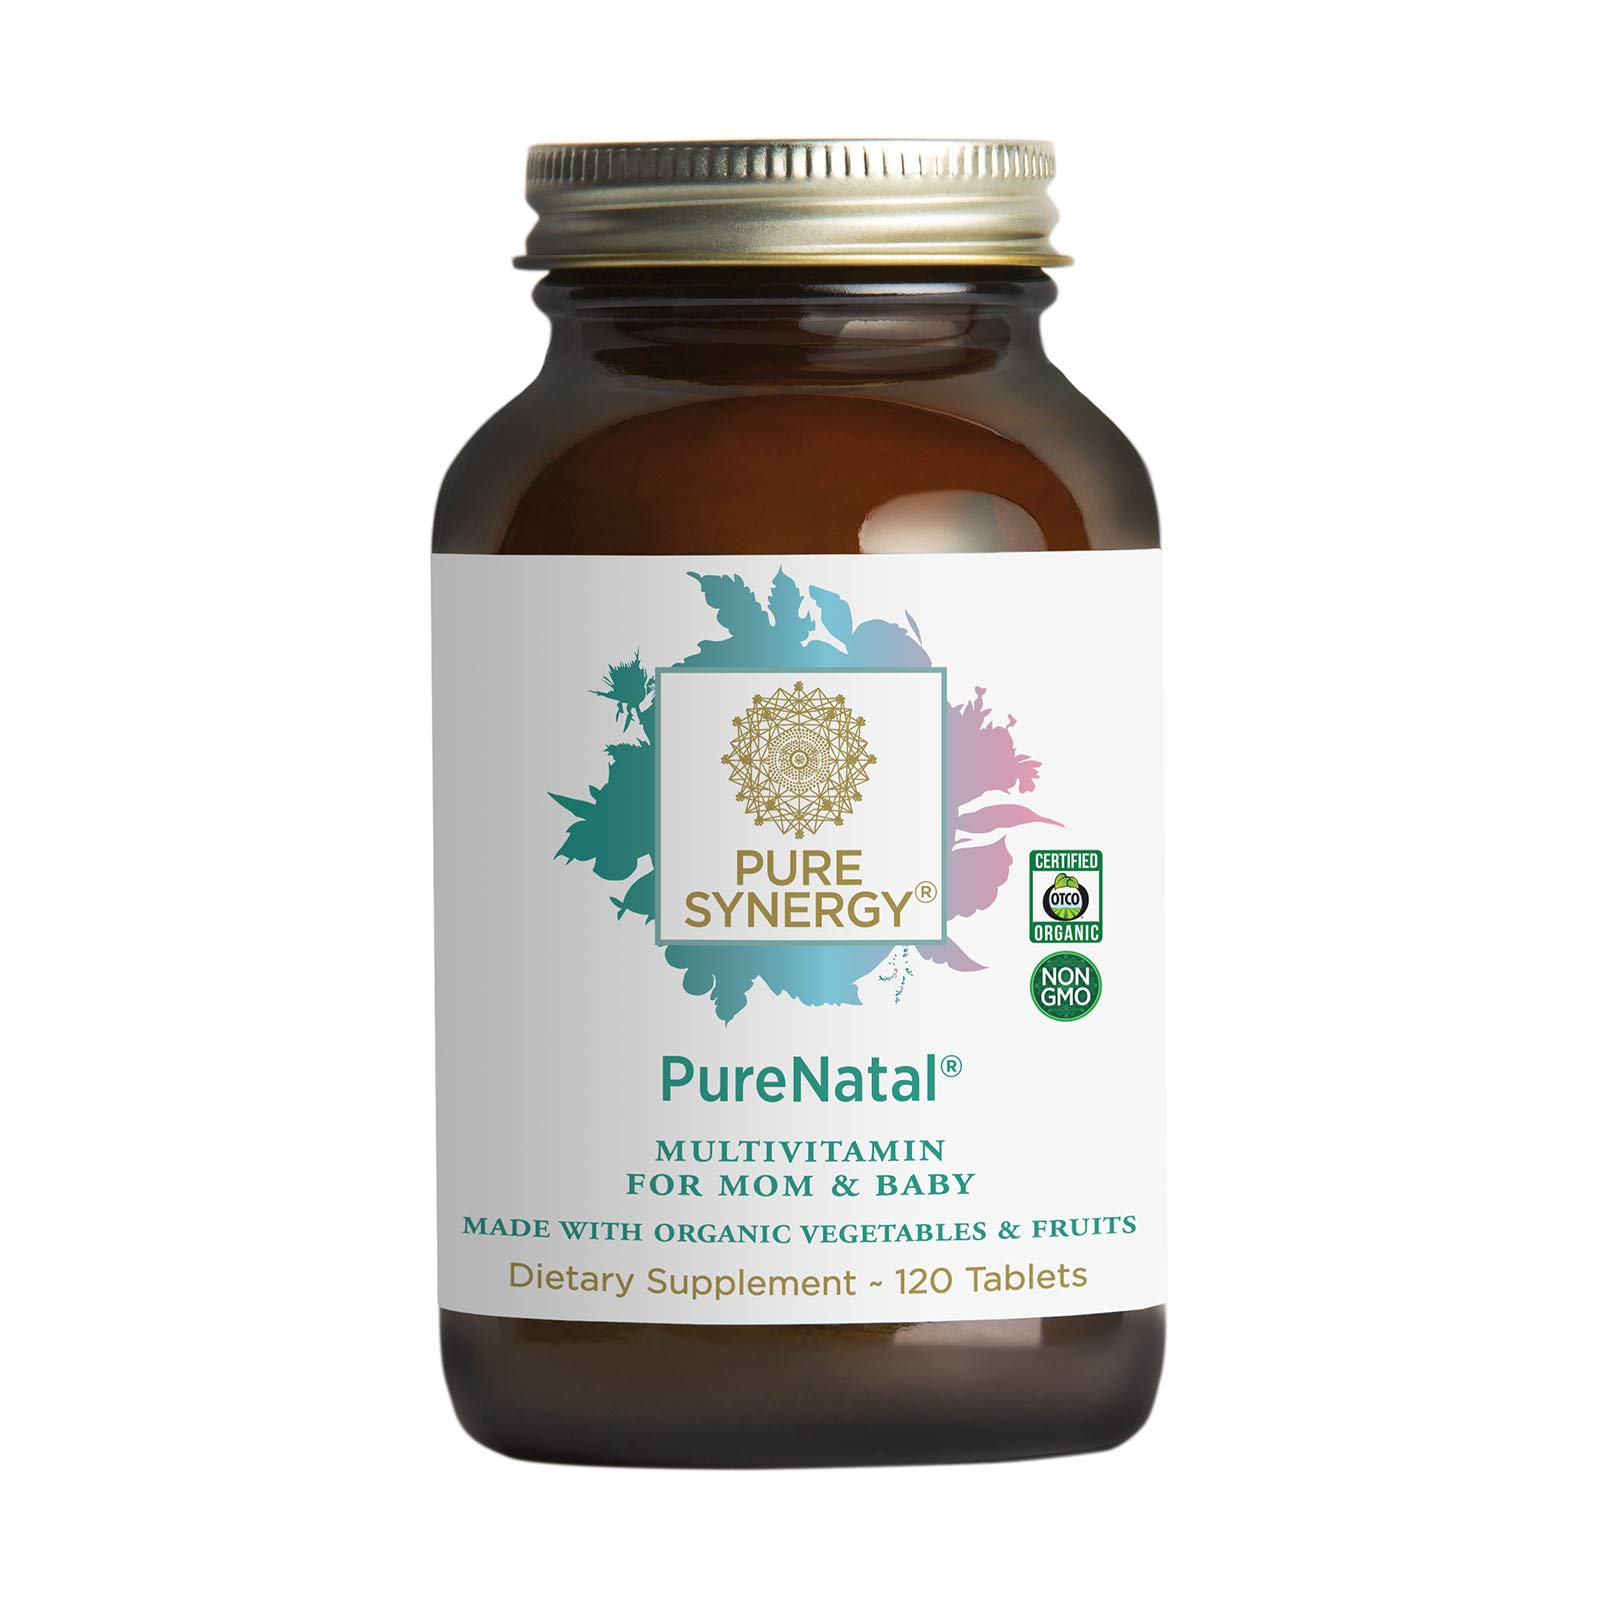 Pure Synergy PureNatal Prenatal Vitamin | 120 Tablets | Made with Organic Ingredients | Non-GMO | Vegan | Gentle on Stomach | Made with Organic Veggies and Fruits